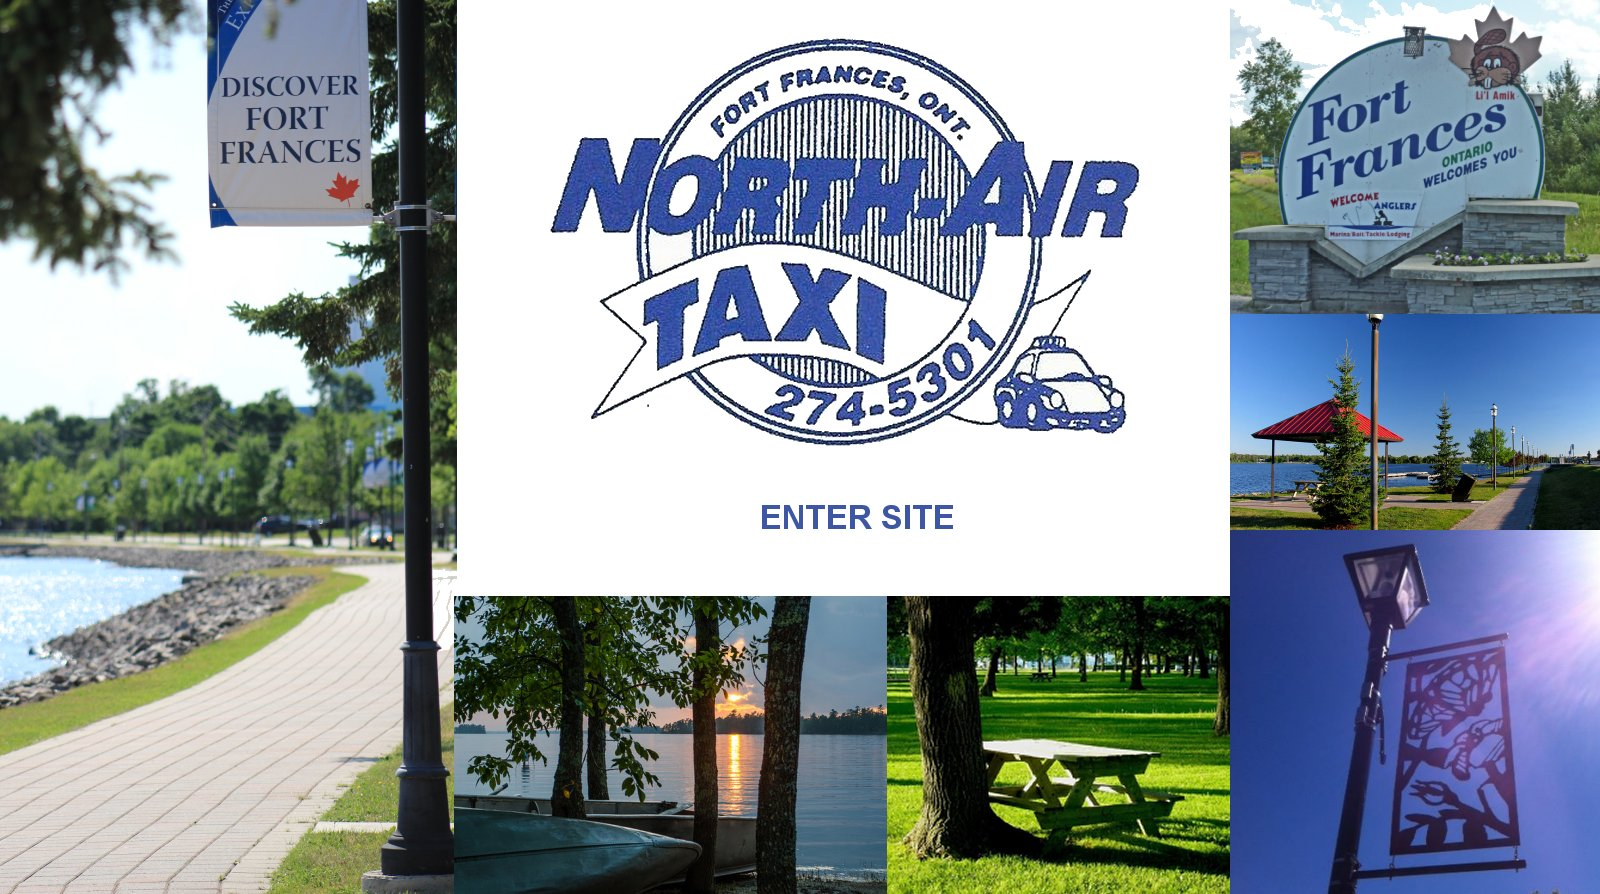 North Air Taxi - Fort Frances Ontario Canada